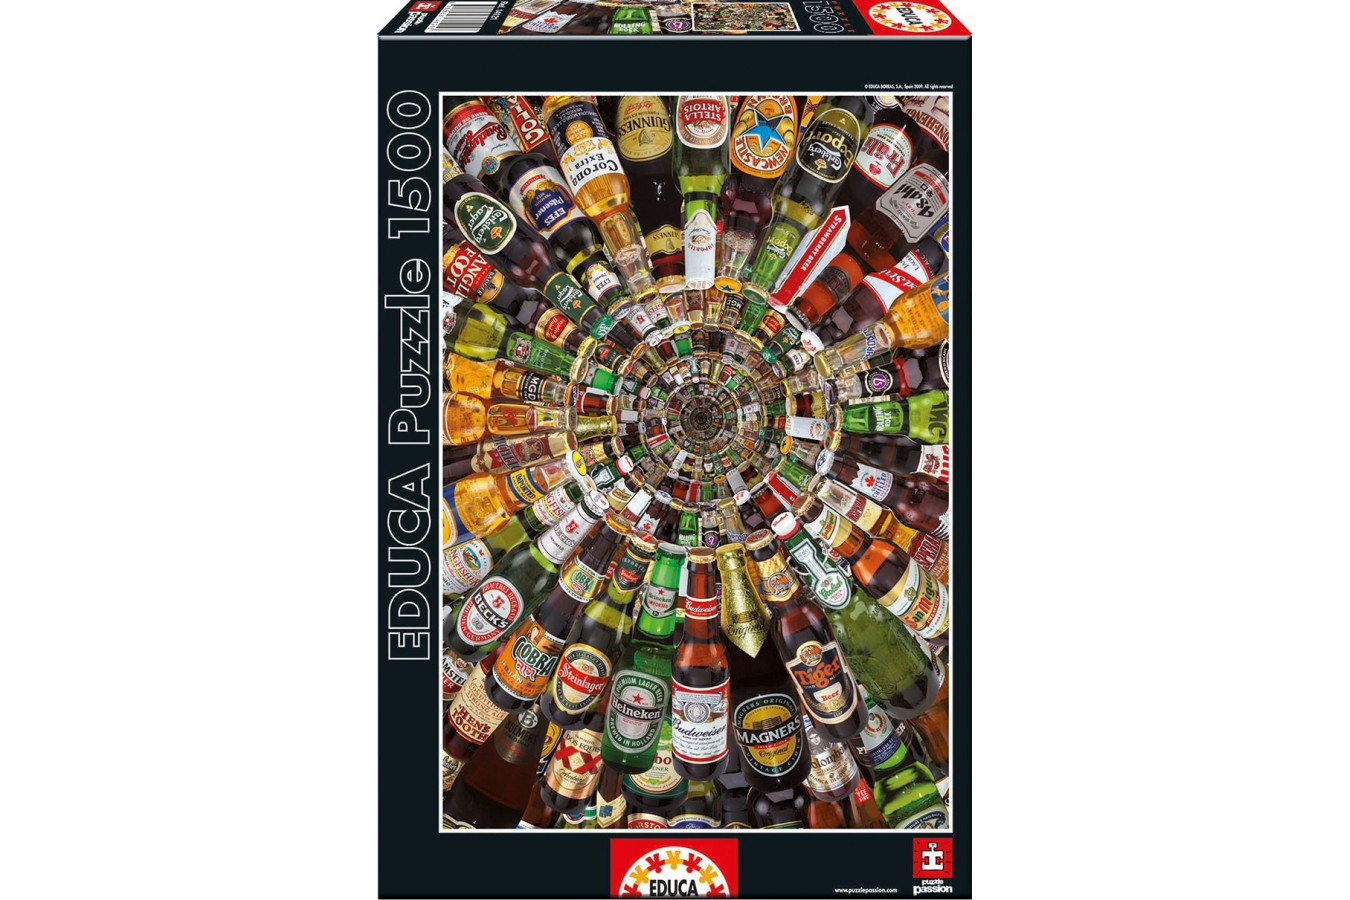 Puzzle Educa - Spiral of Cans of Beer, 1500 piese, include lipici puzzle (14121)